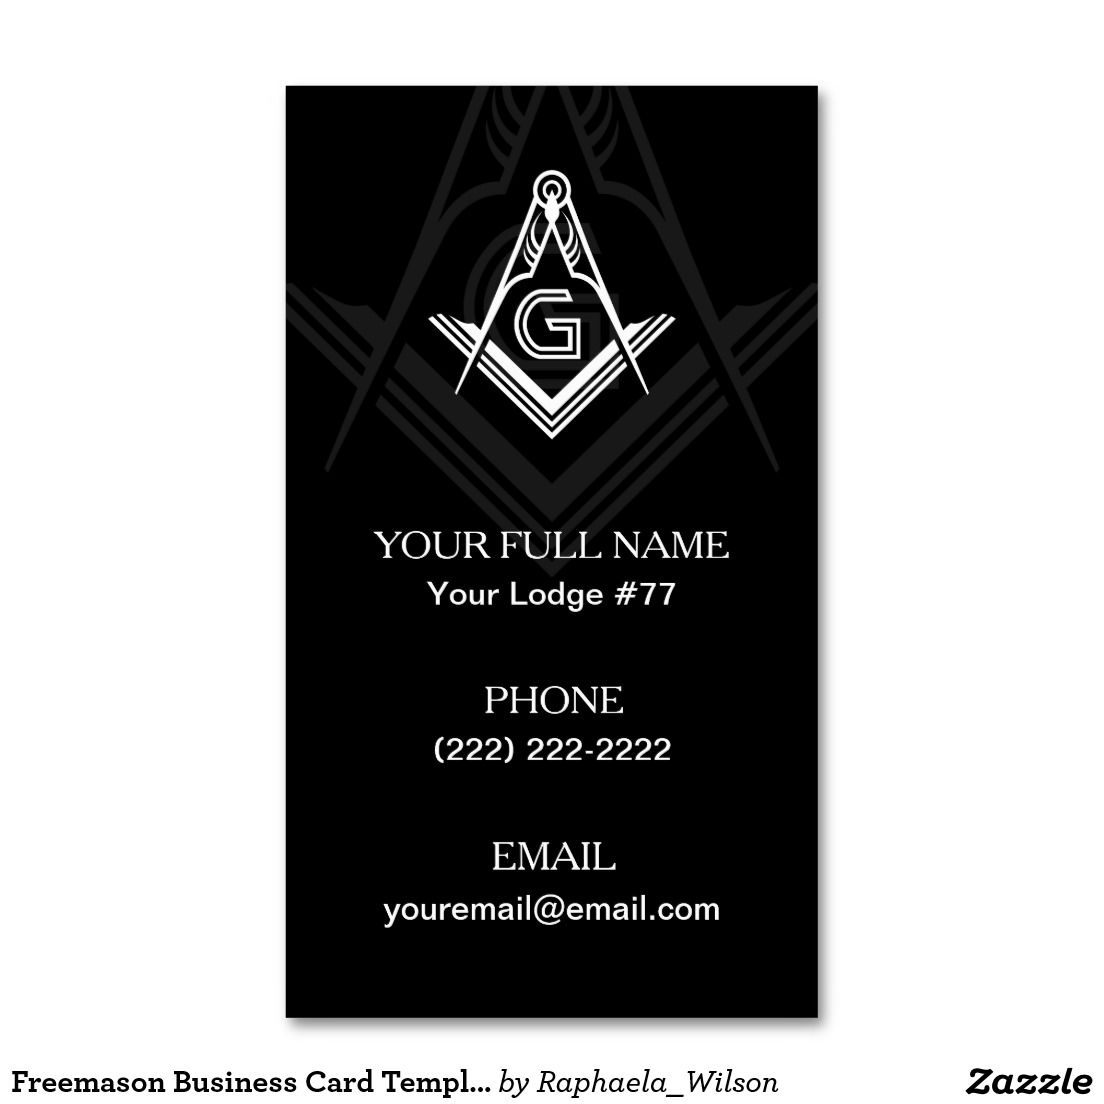 Freemason Business Card Templates | Masonic Cards | Pinterest | Card ...